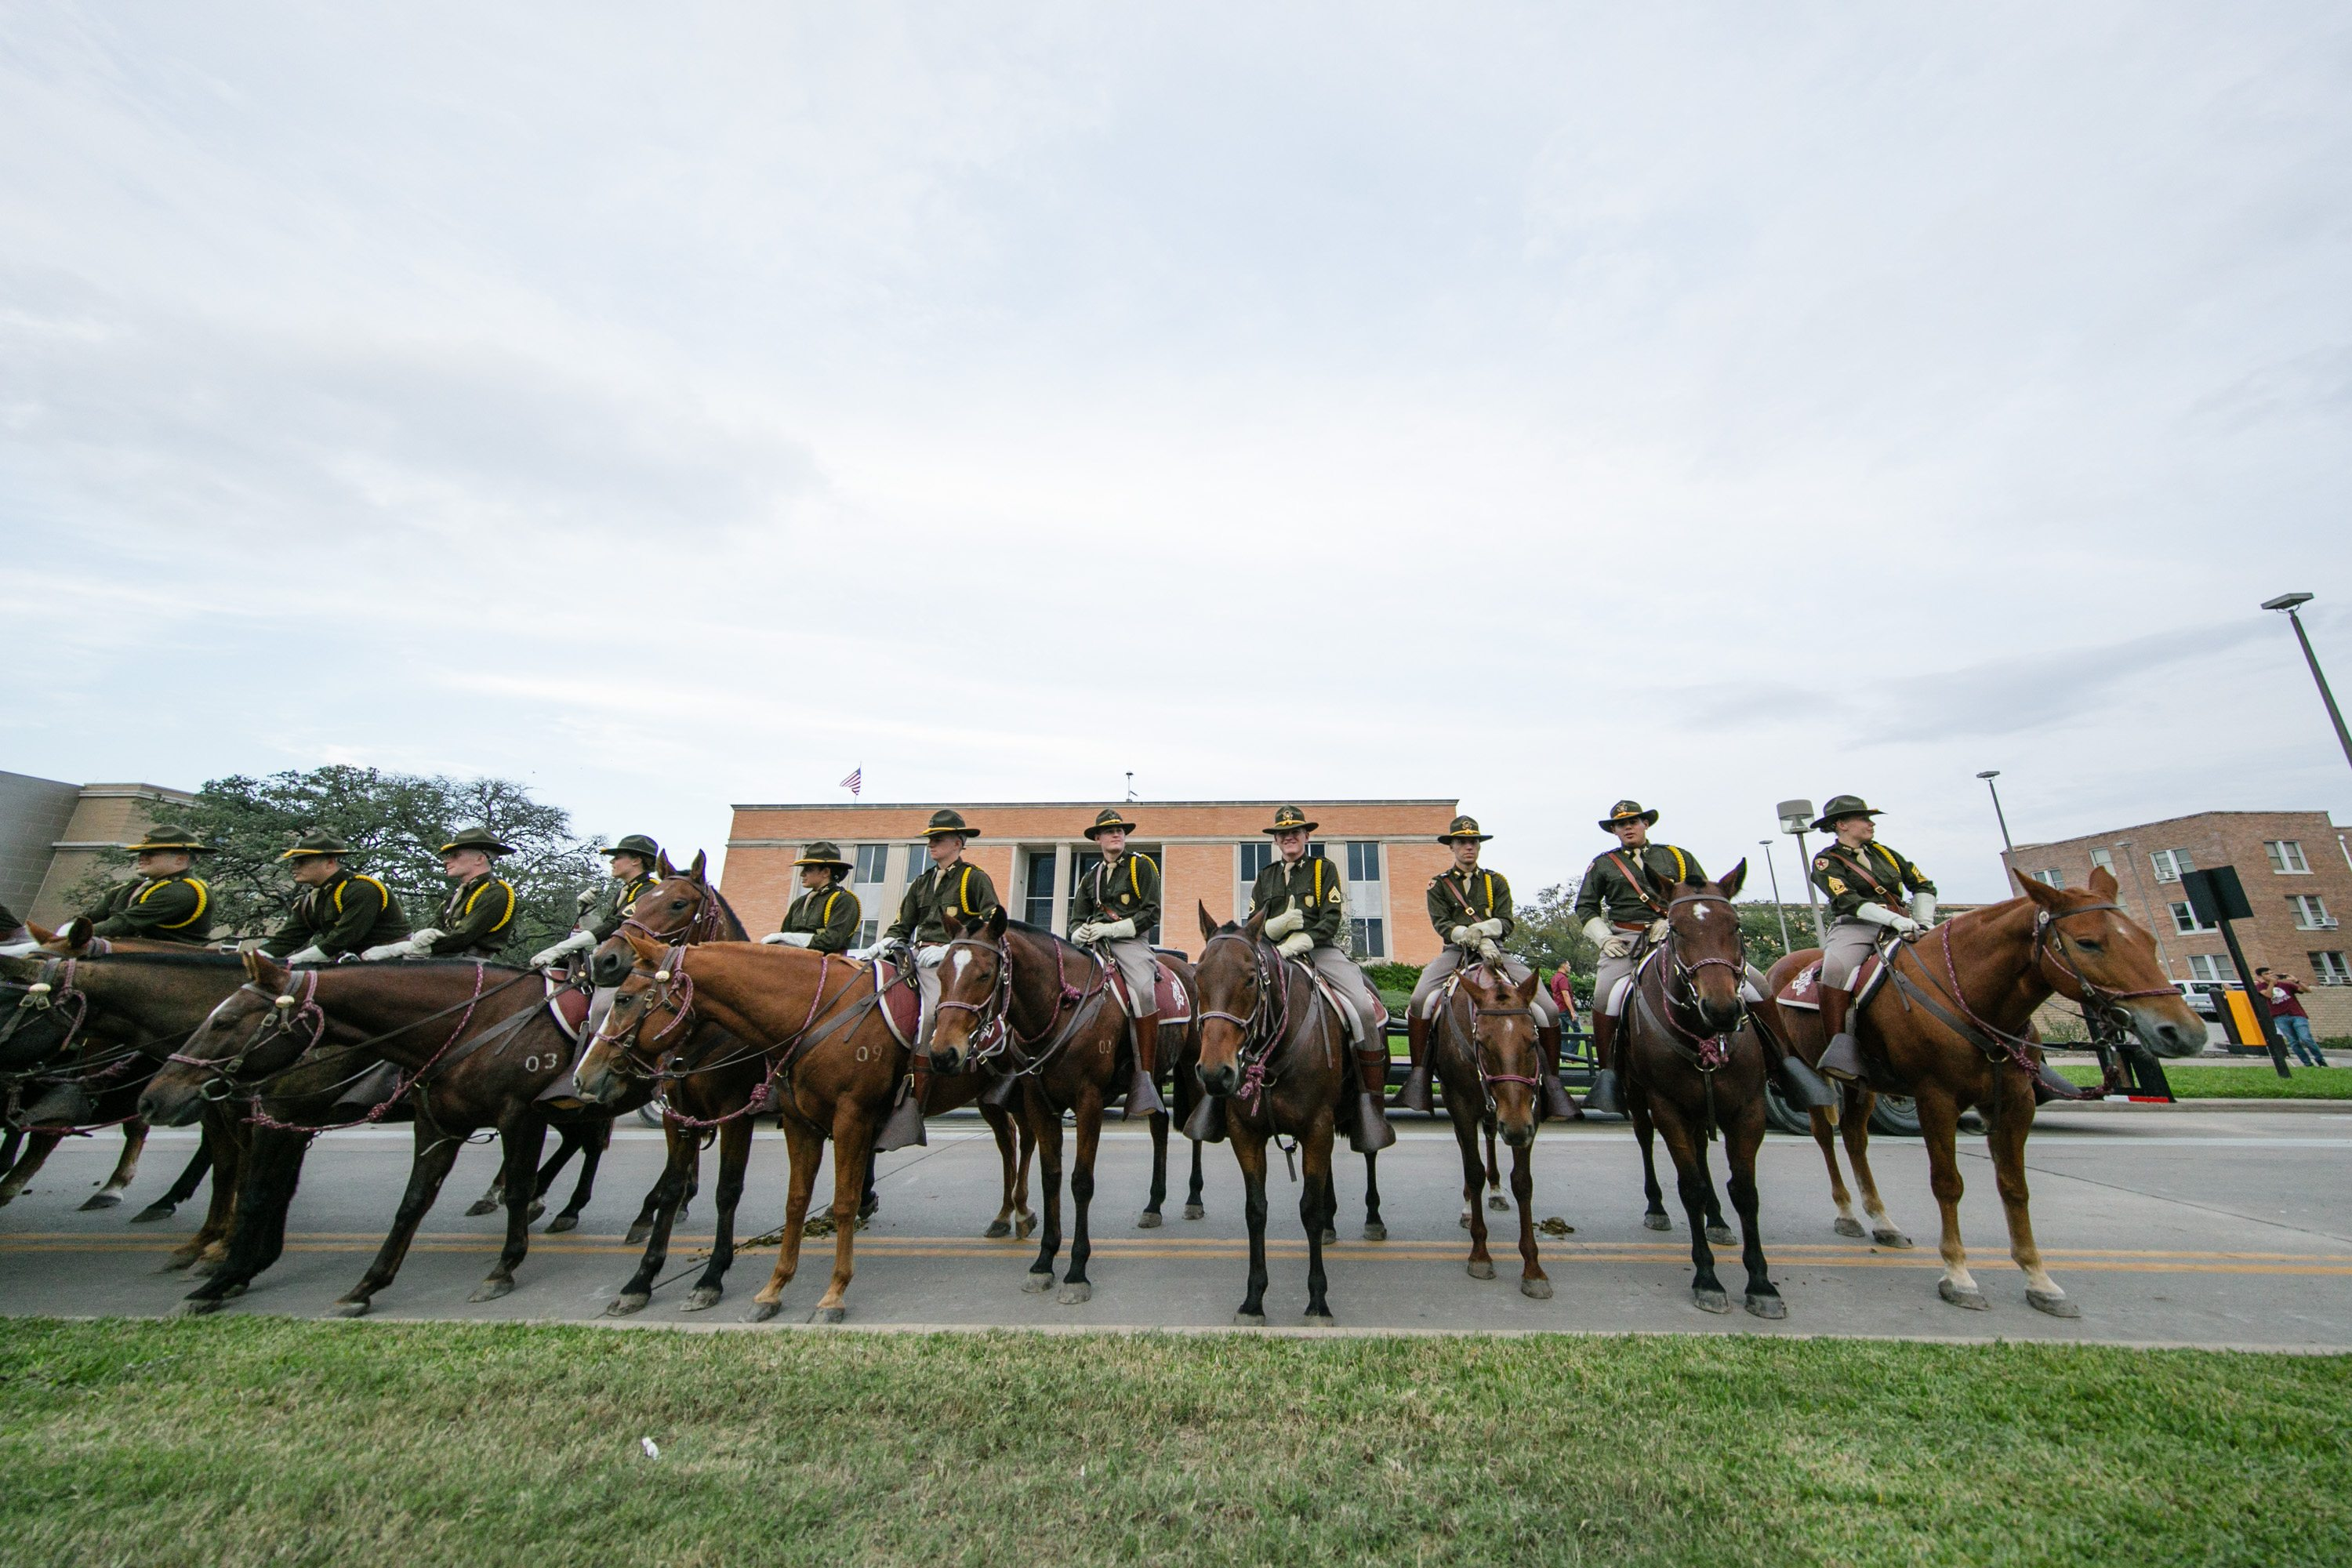 Parsons Mounted Cavalry awaits March In prior to the Texas A&M vs. Ole Miss football game in 2016. (Gabriel Chmielewski/Texas A&M Marketing & Communications)